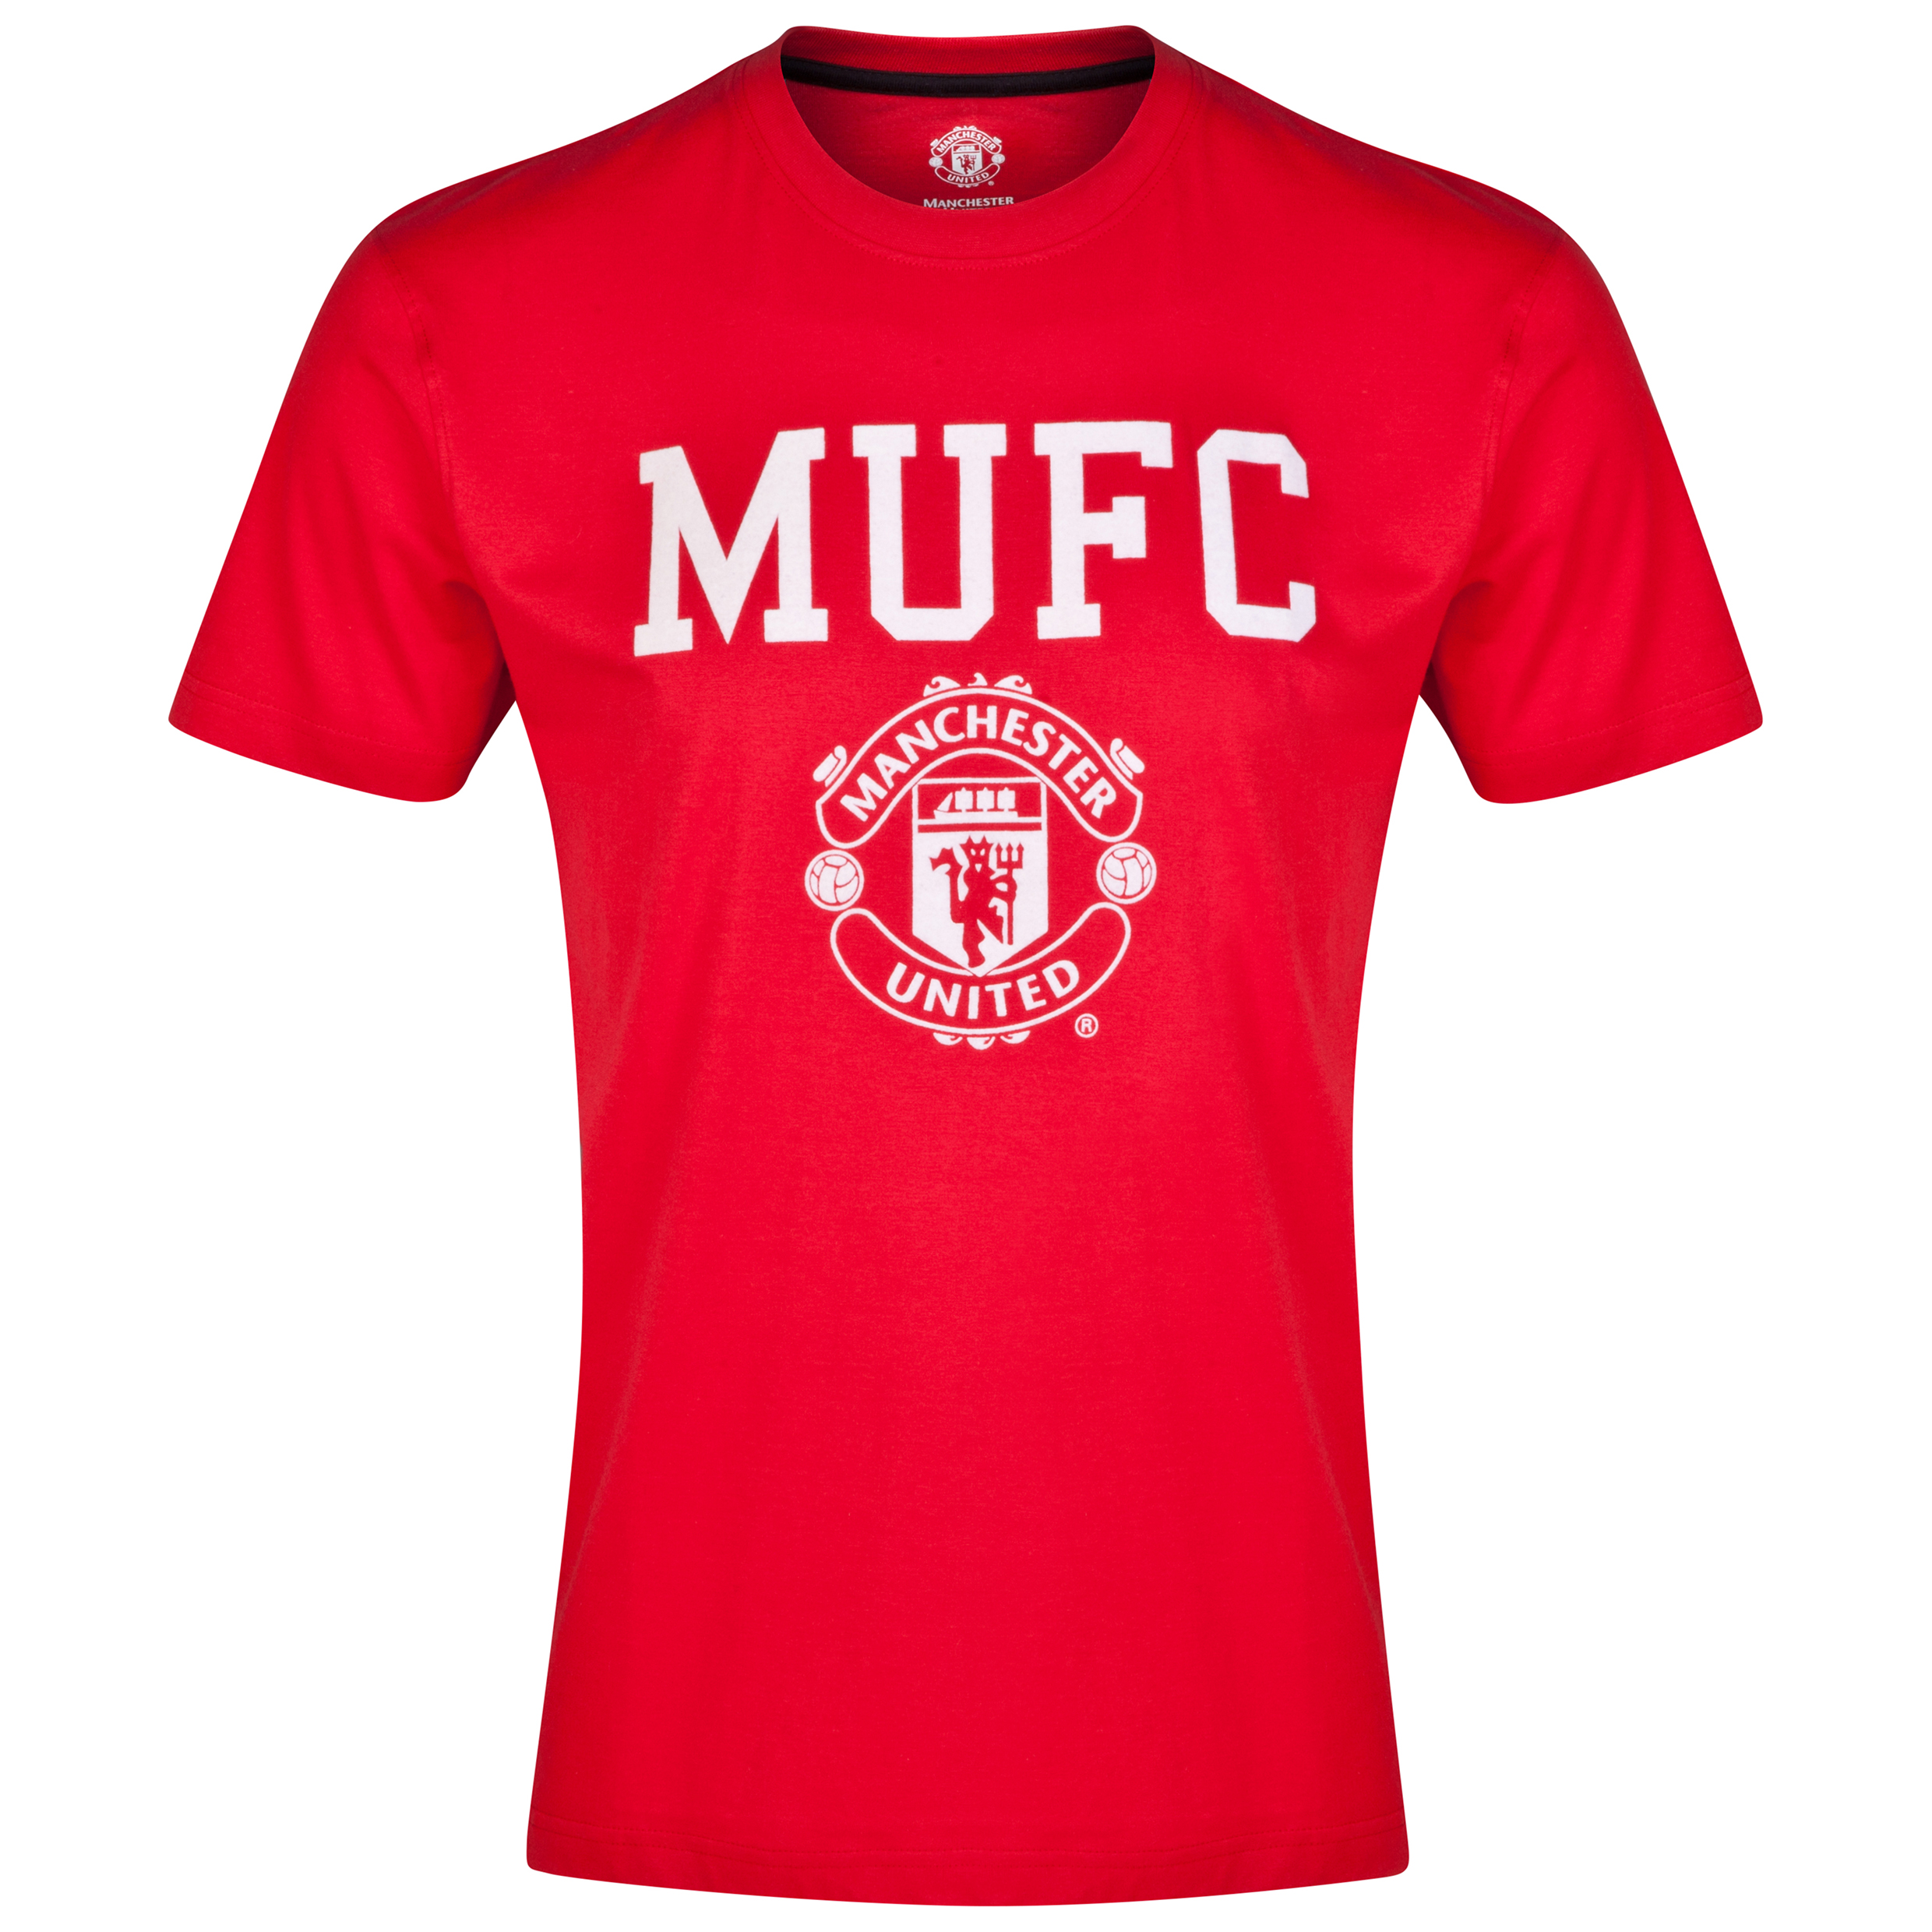 Manchester United Classic T-Shirt - Red - Mens